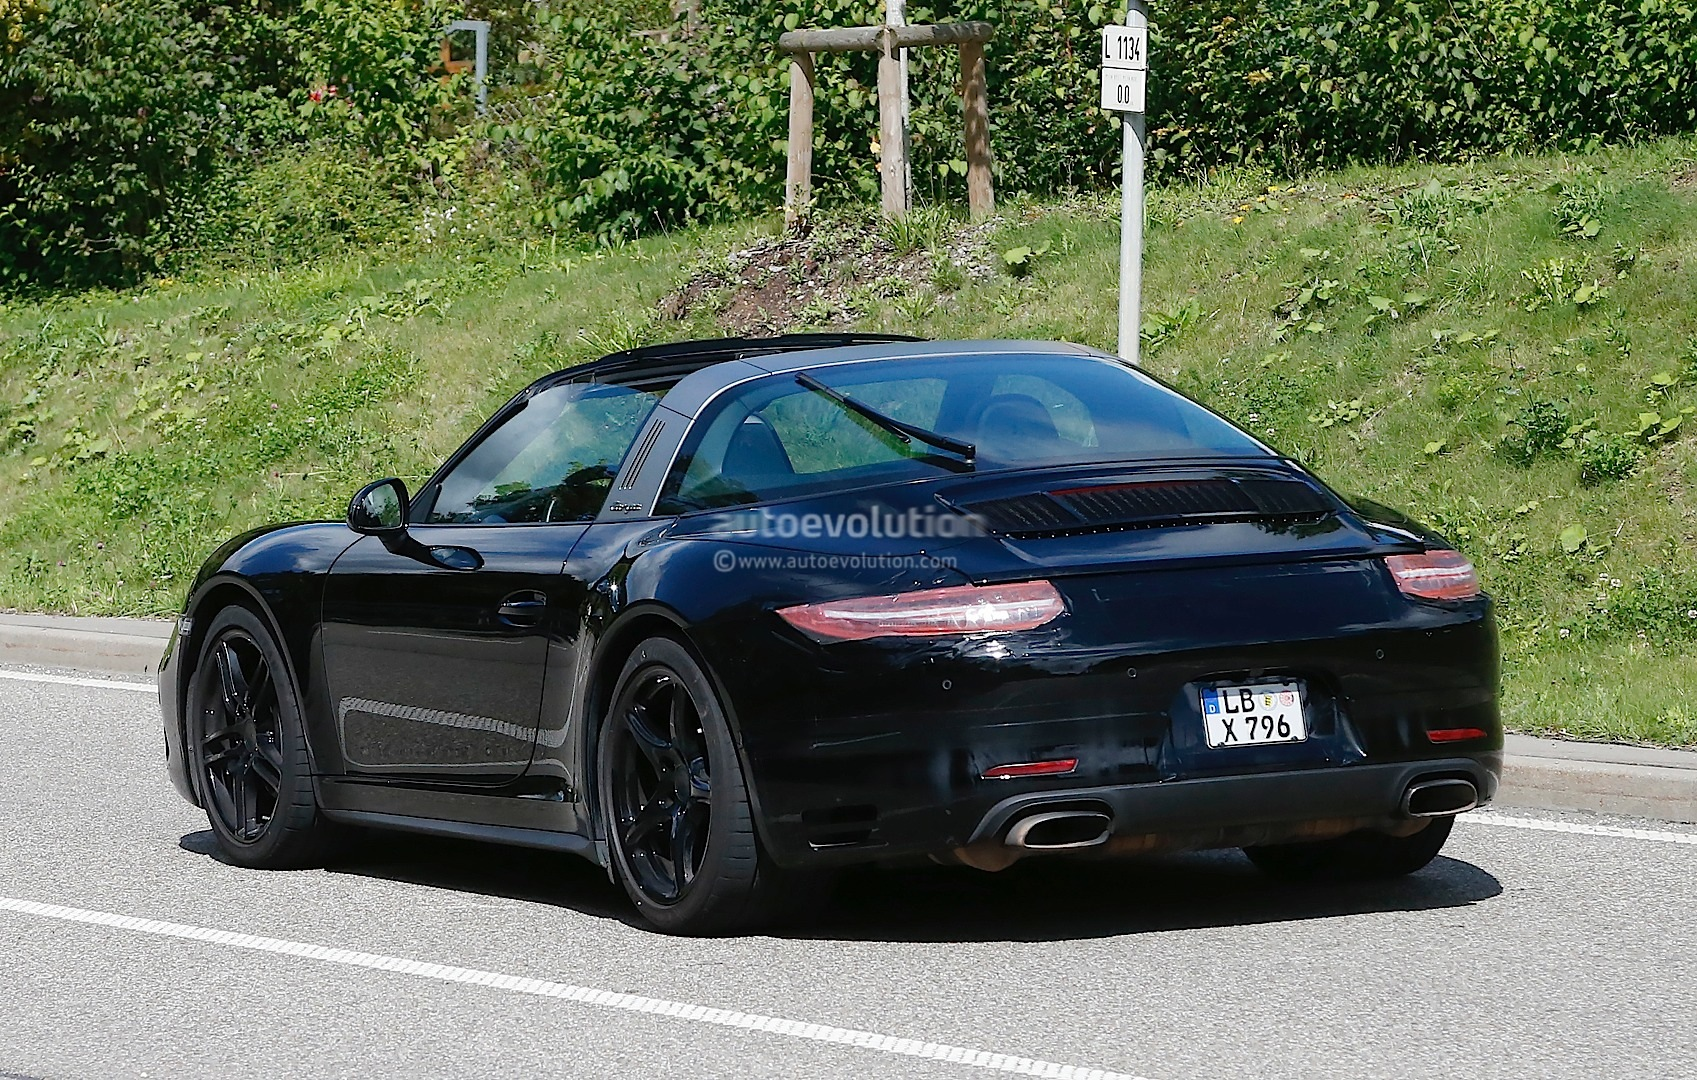 Spyshots Porsche 911 Targa Facelift Almost Ready For